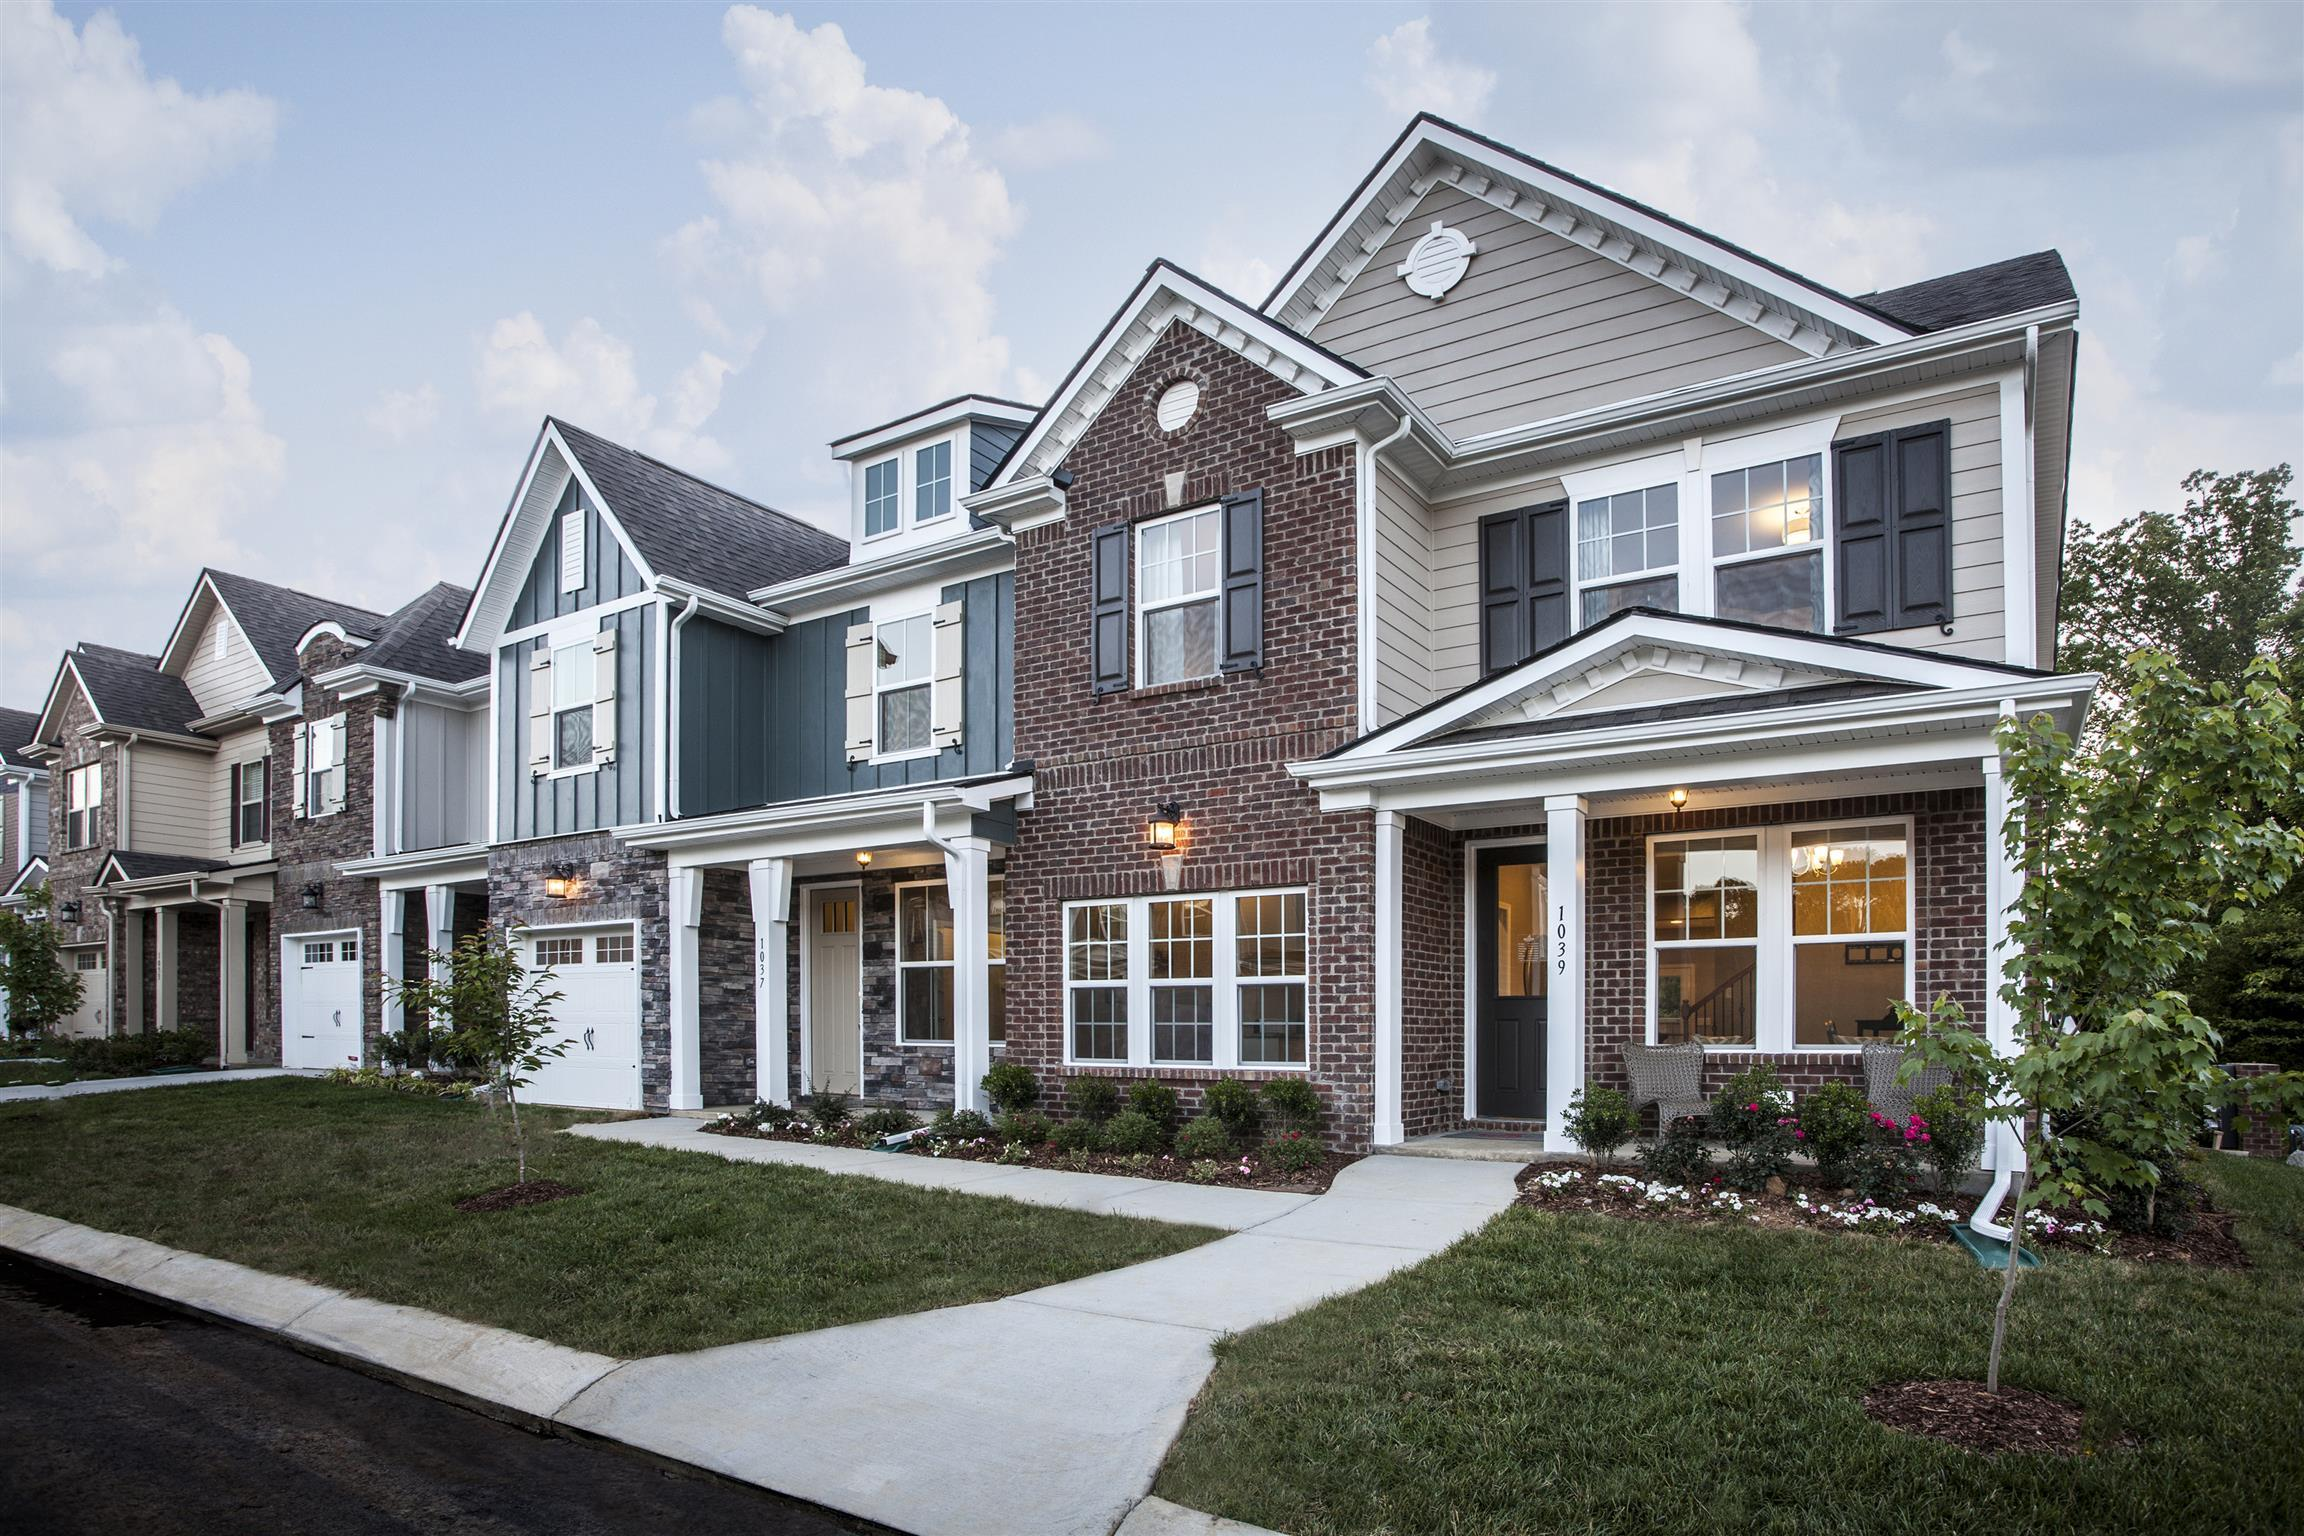 $267,145 - 3Br/3Ba -  for Sale in Nichols Vale, Mount Juliet